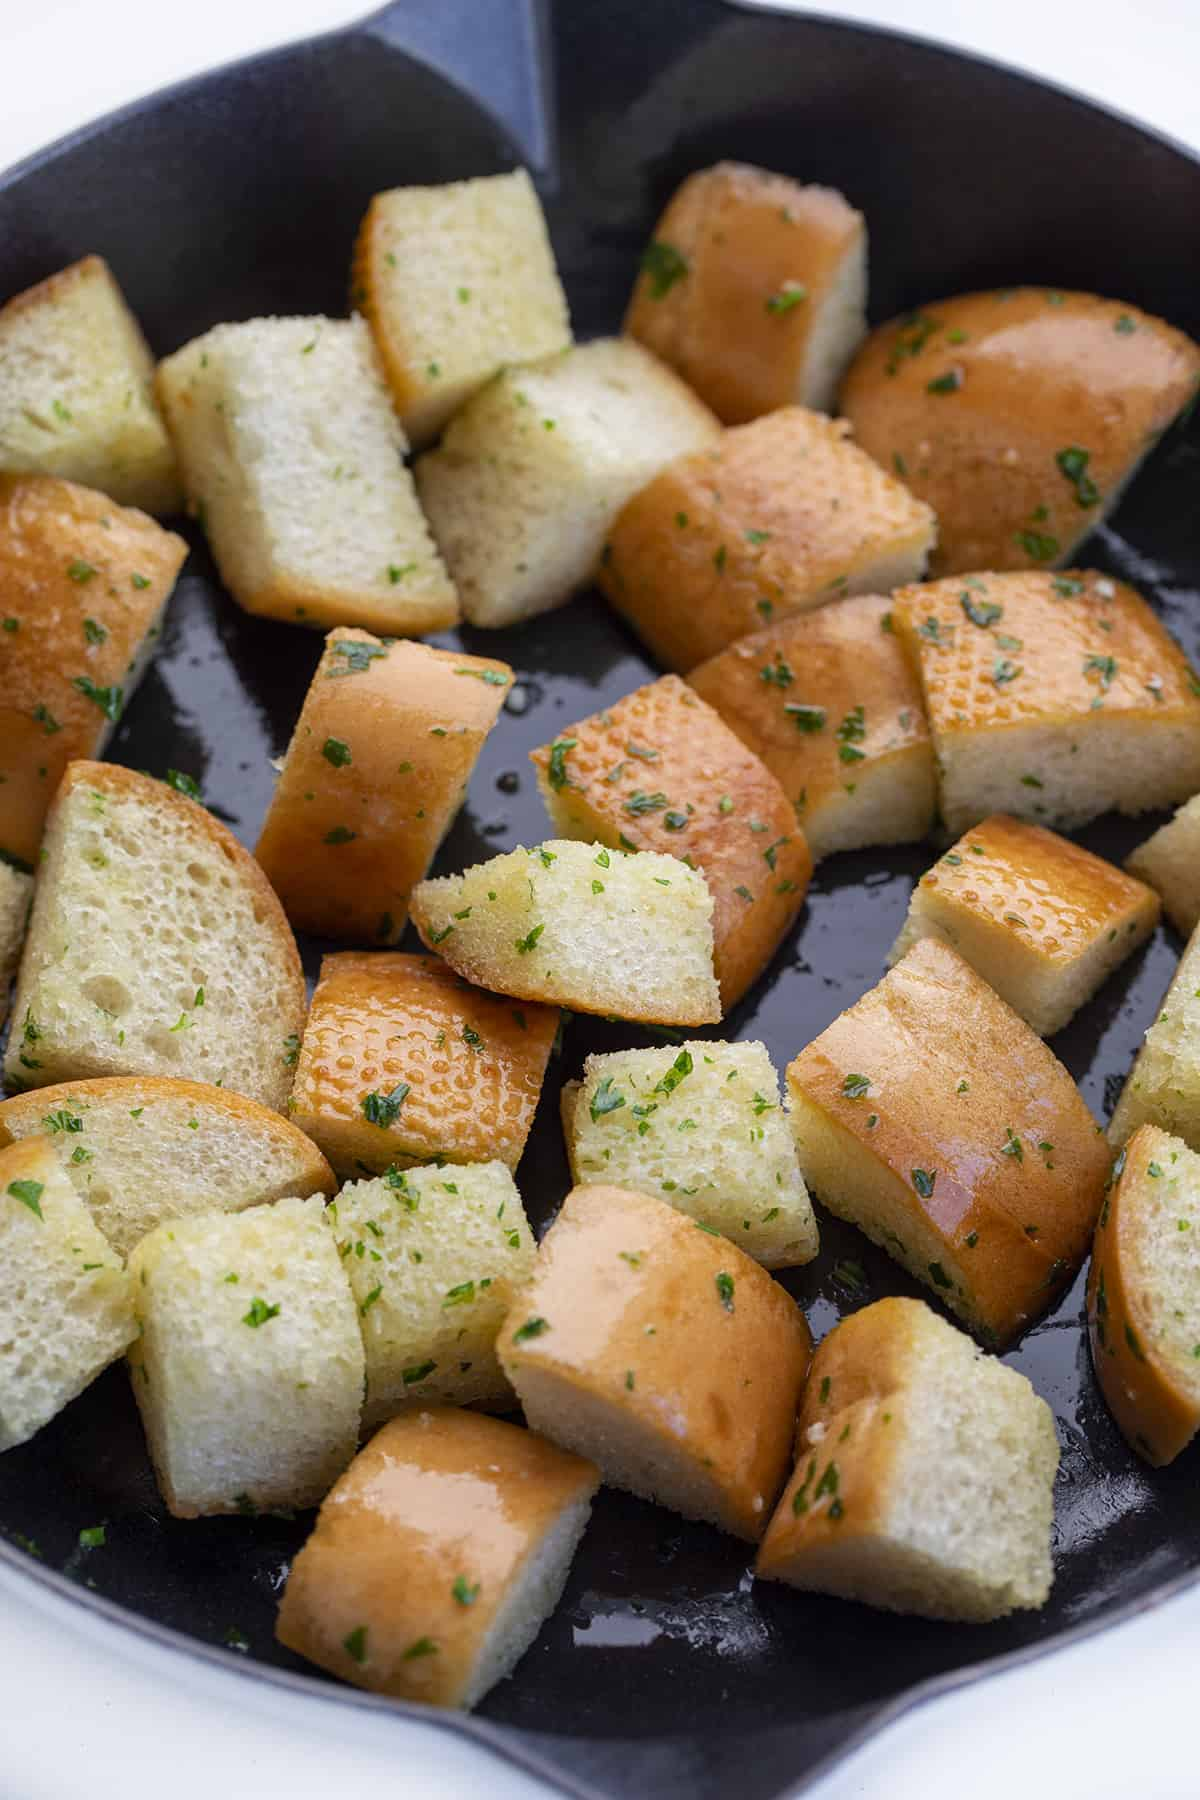 Croutons in Skillet